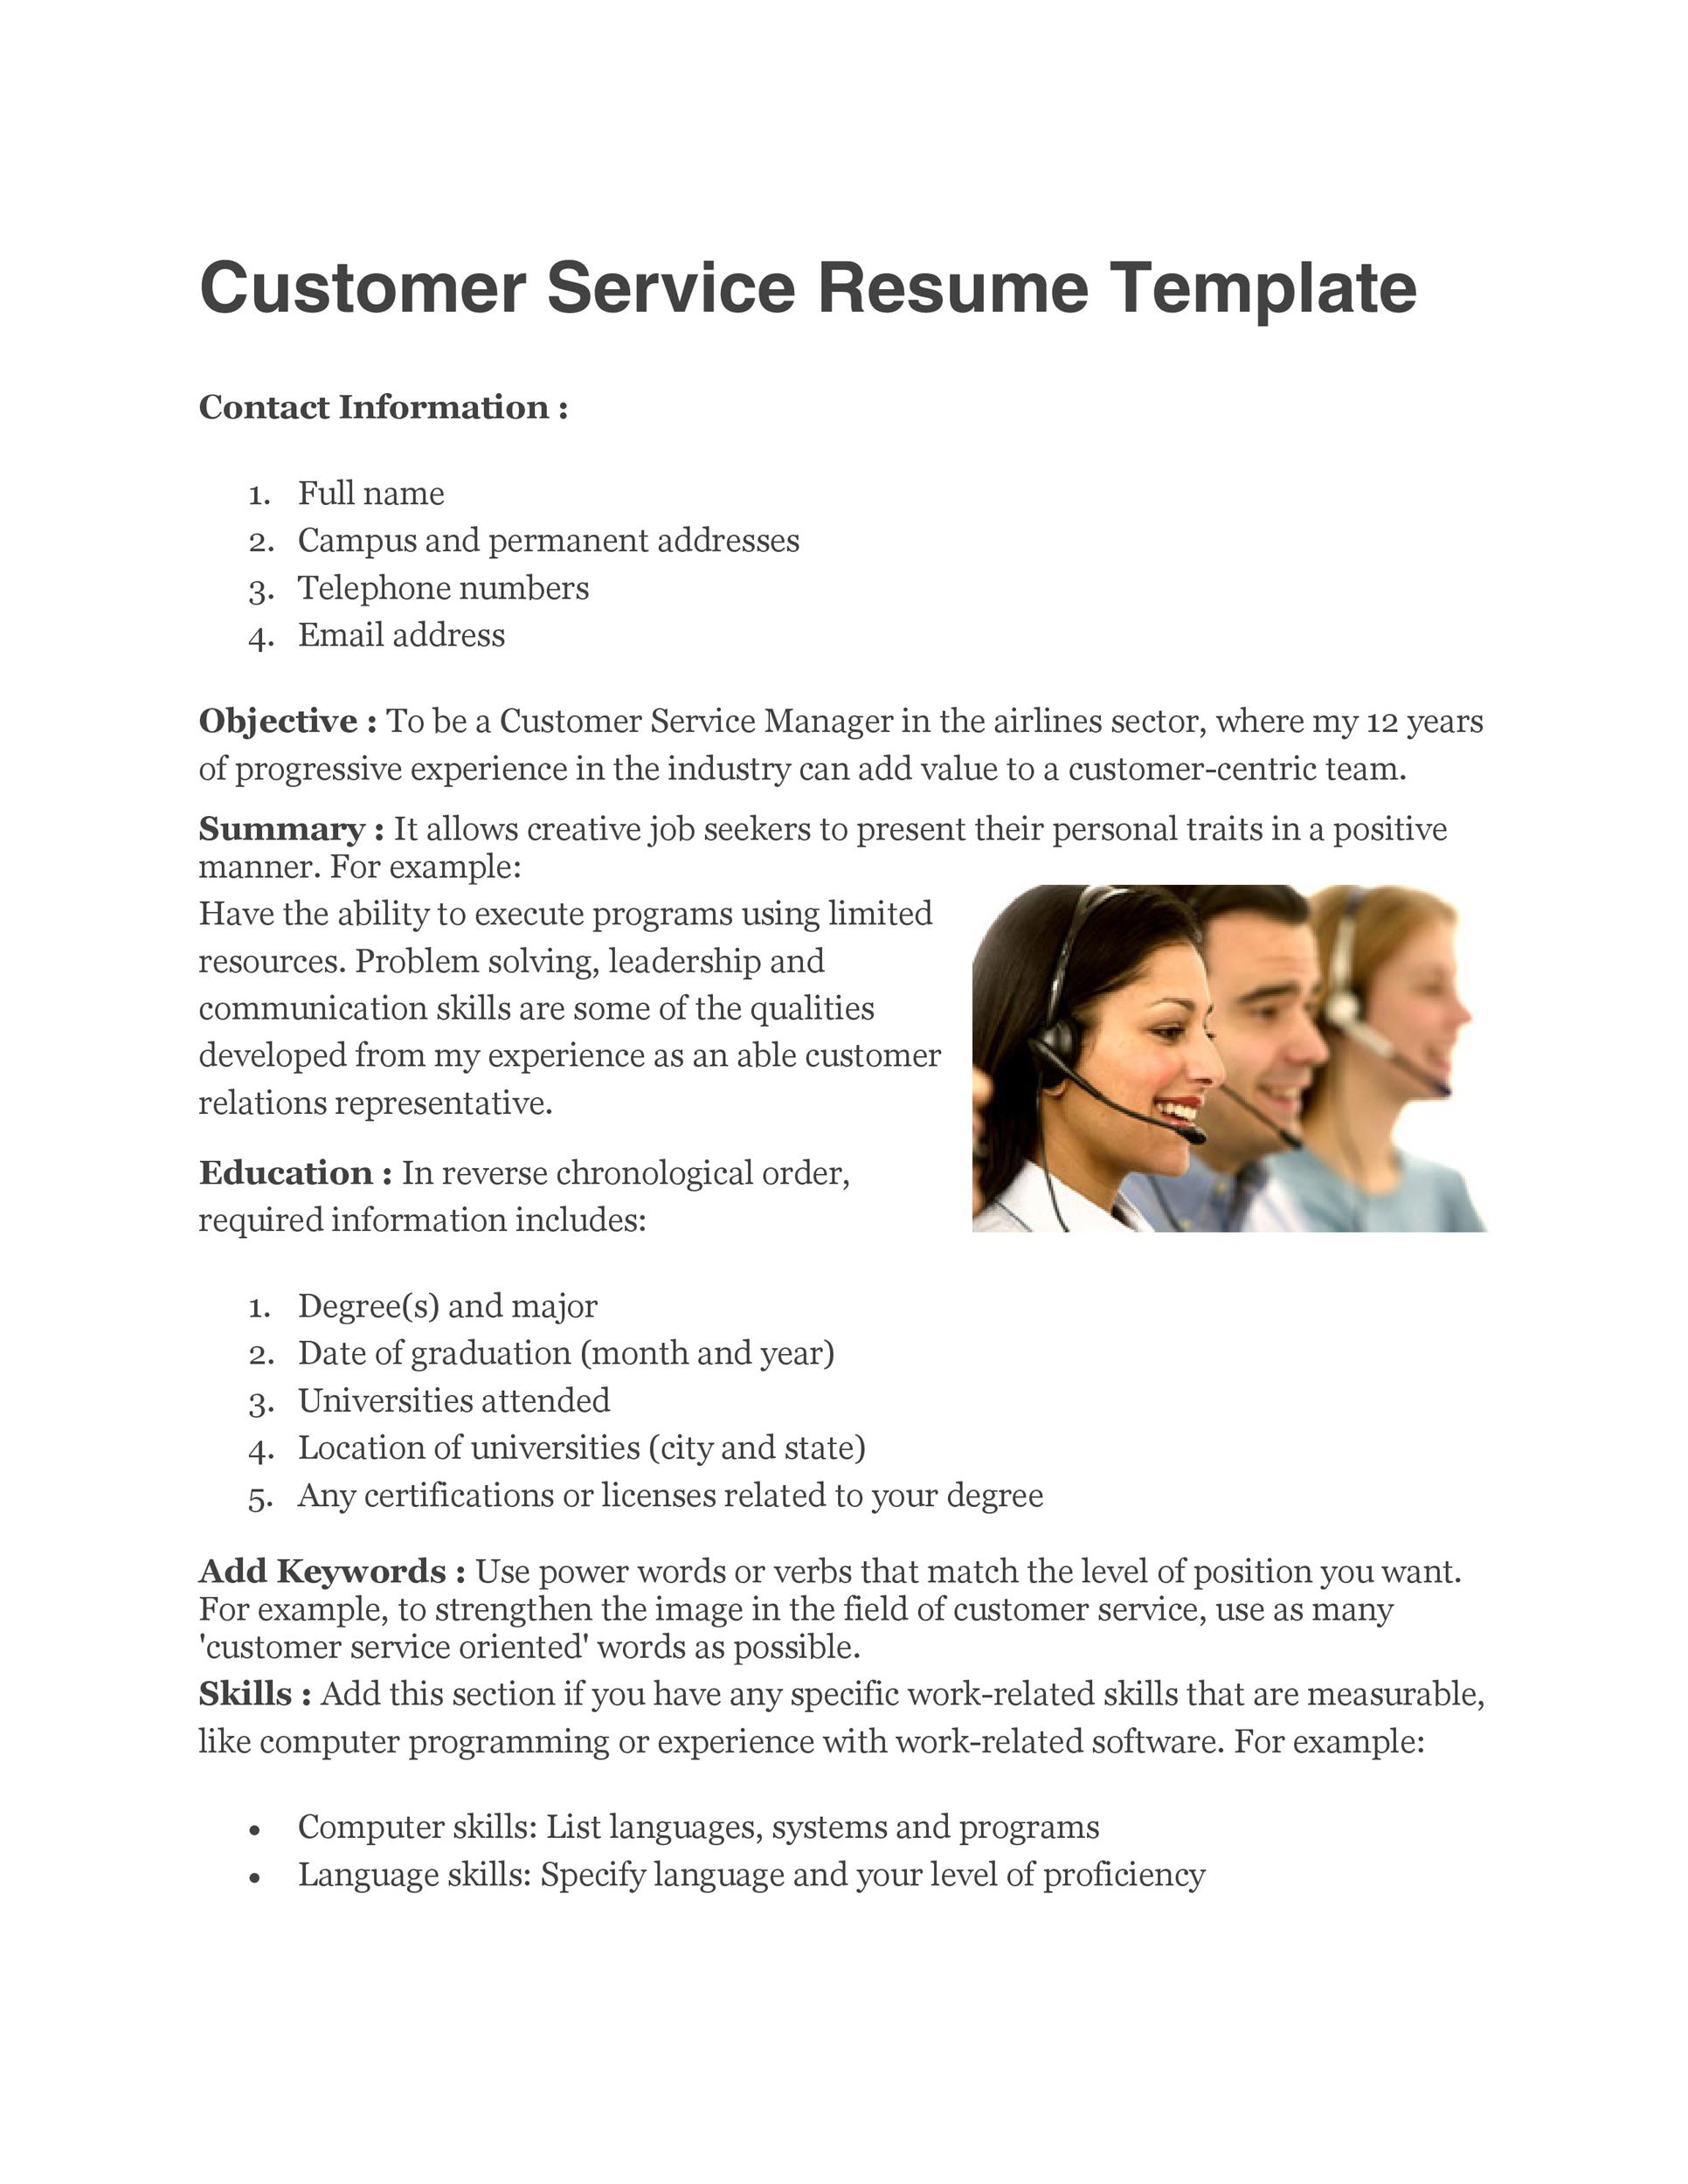 Sample Resume Conference Director  Resume Words For Skills